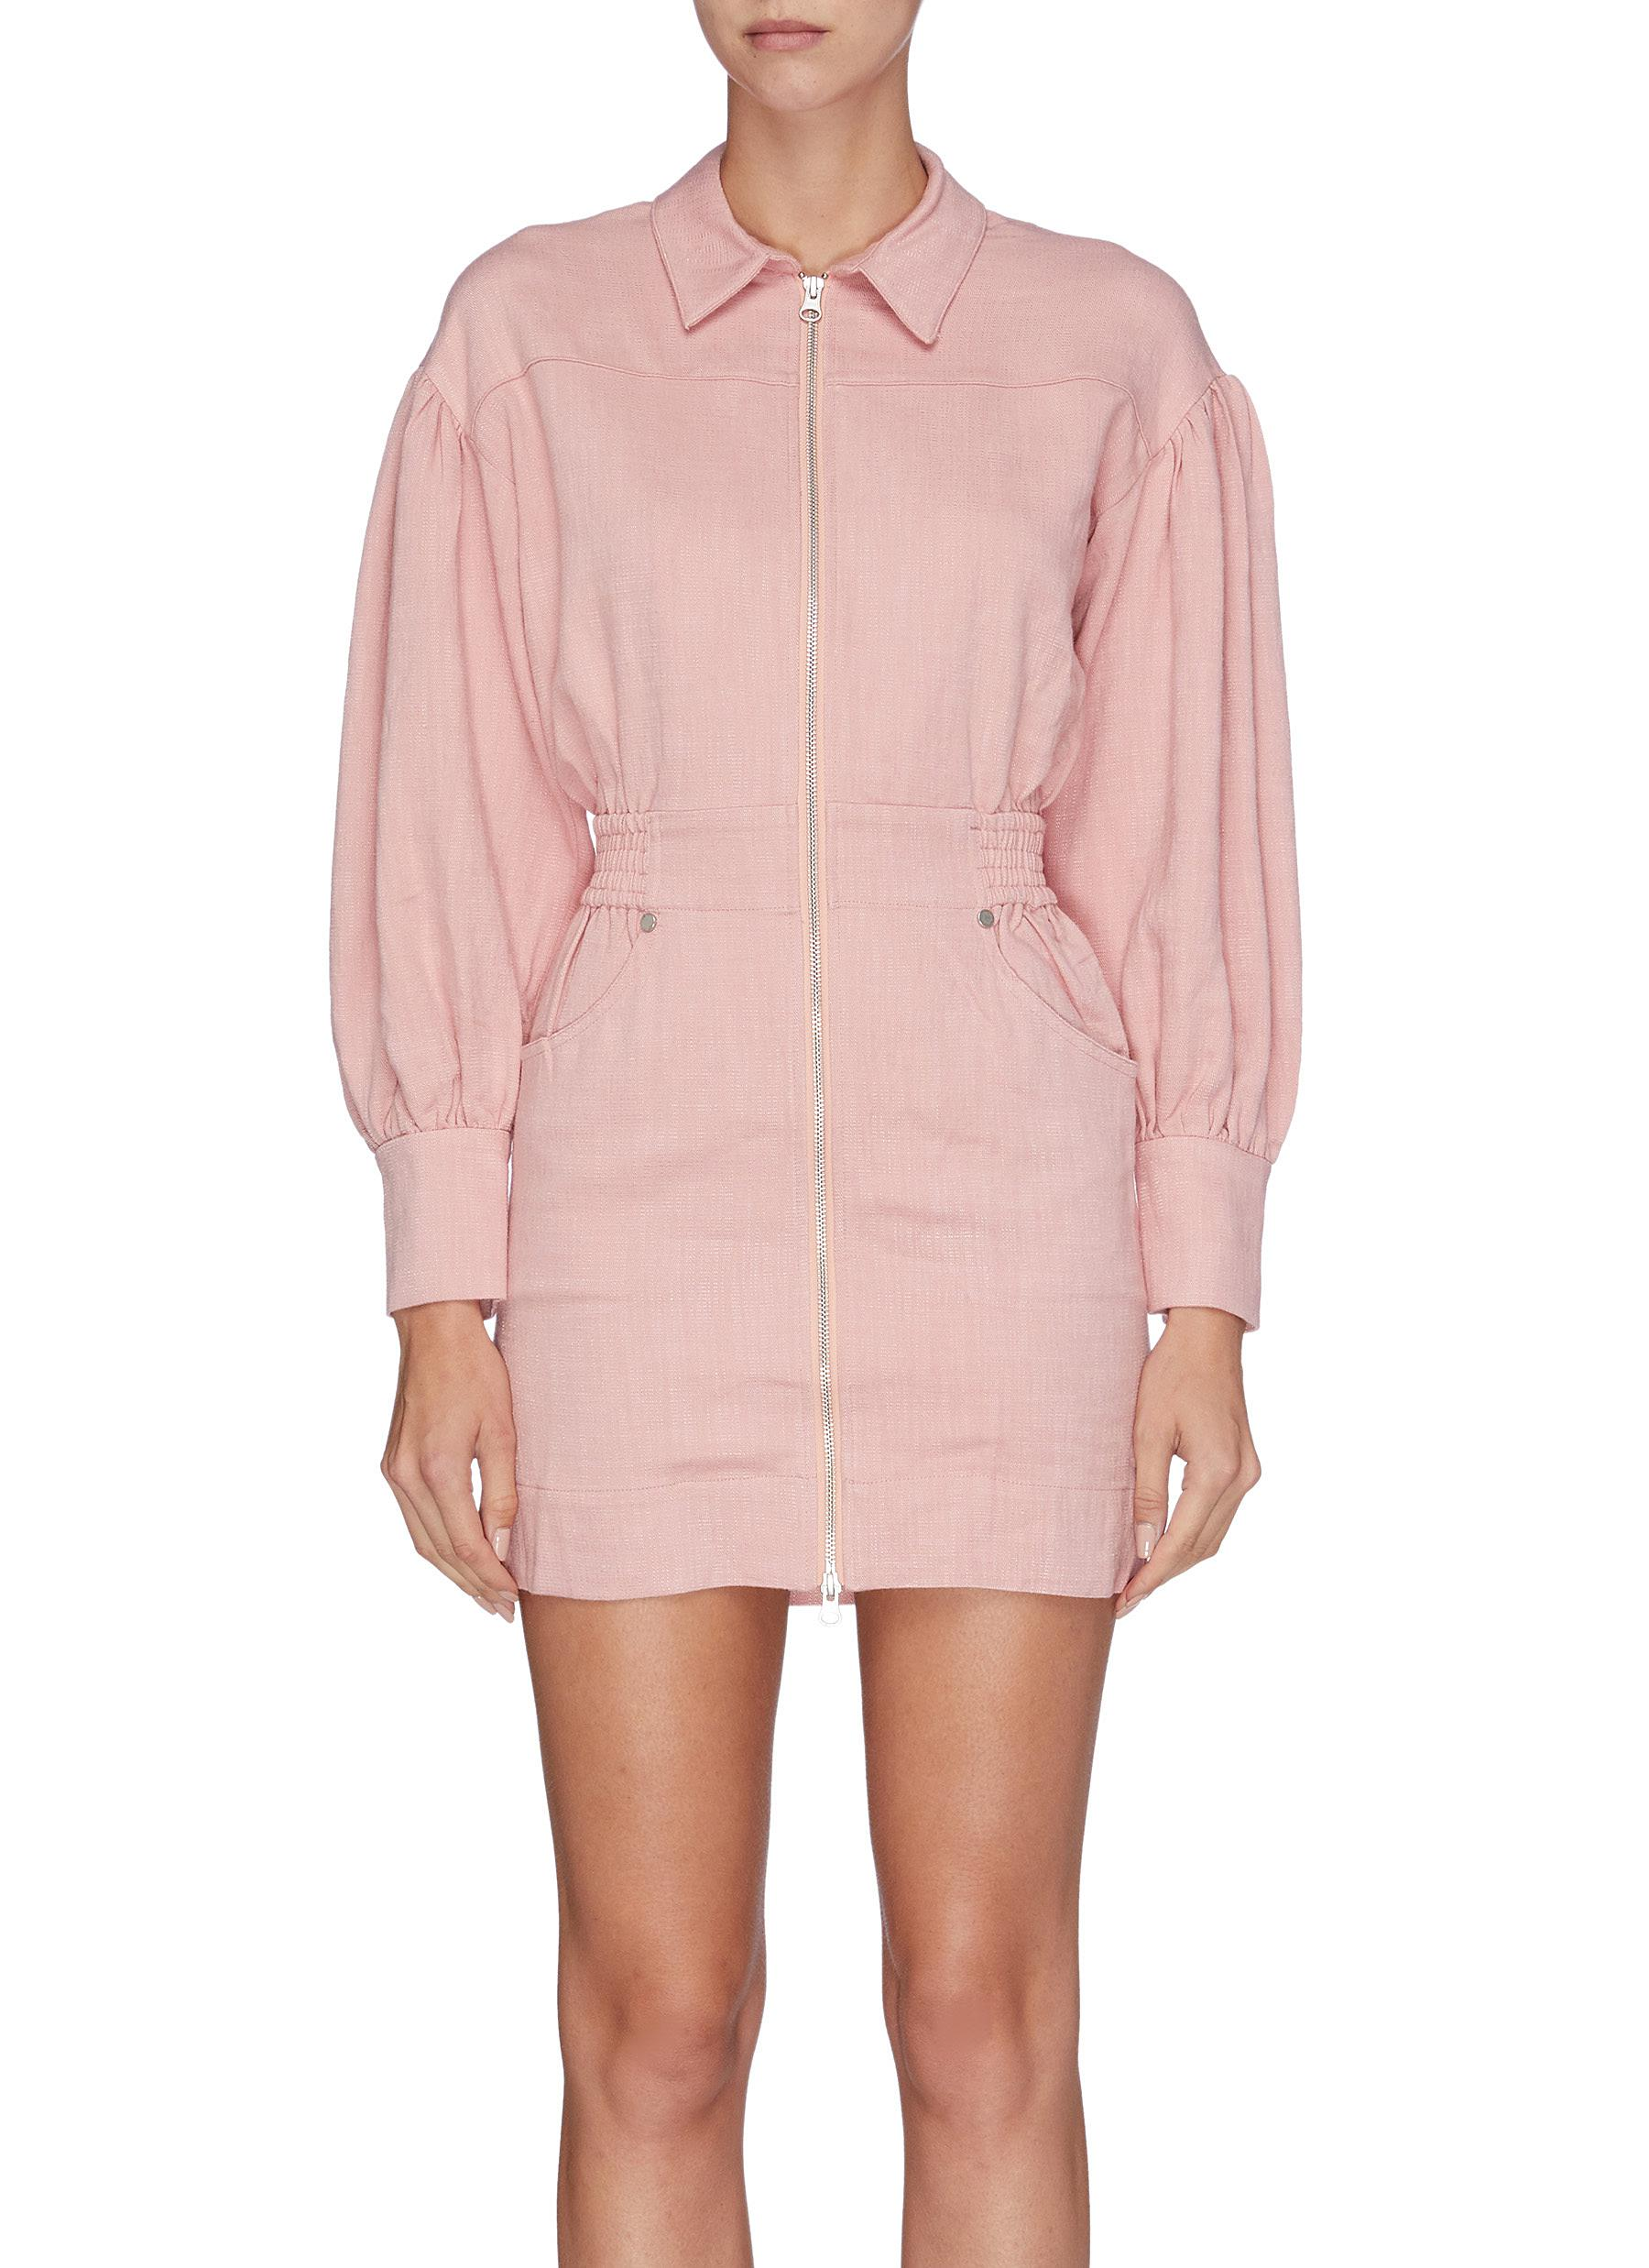 Clean slate zip front bishop sleeve dress by C/Meo Collective